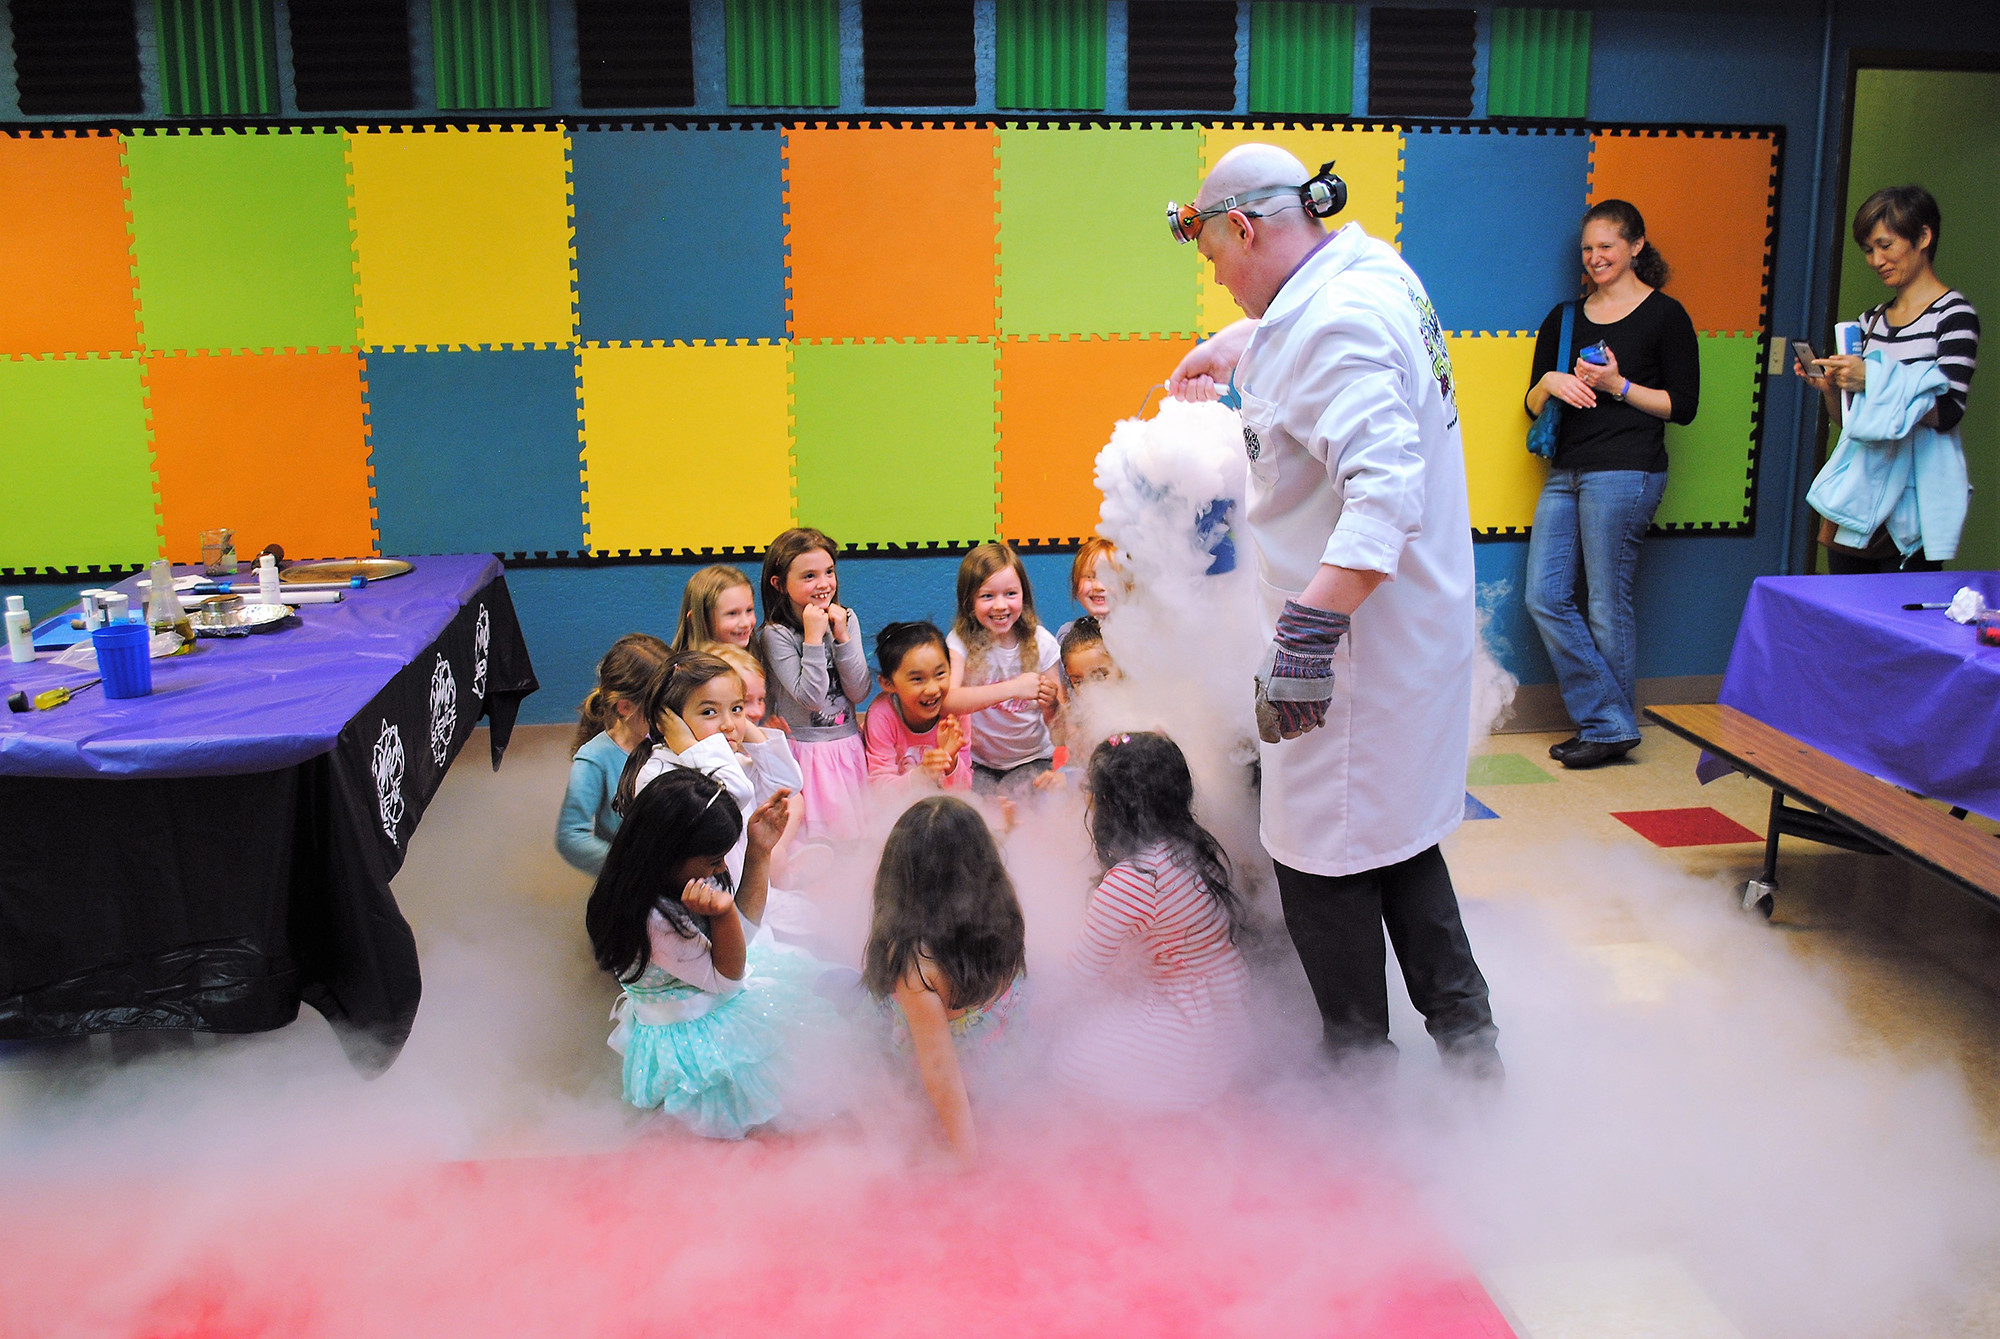 Best ideas about Places To Go For Birthday Party . Save or Pin Winter Kids Birthday Party Places Now.